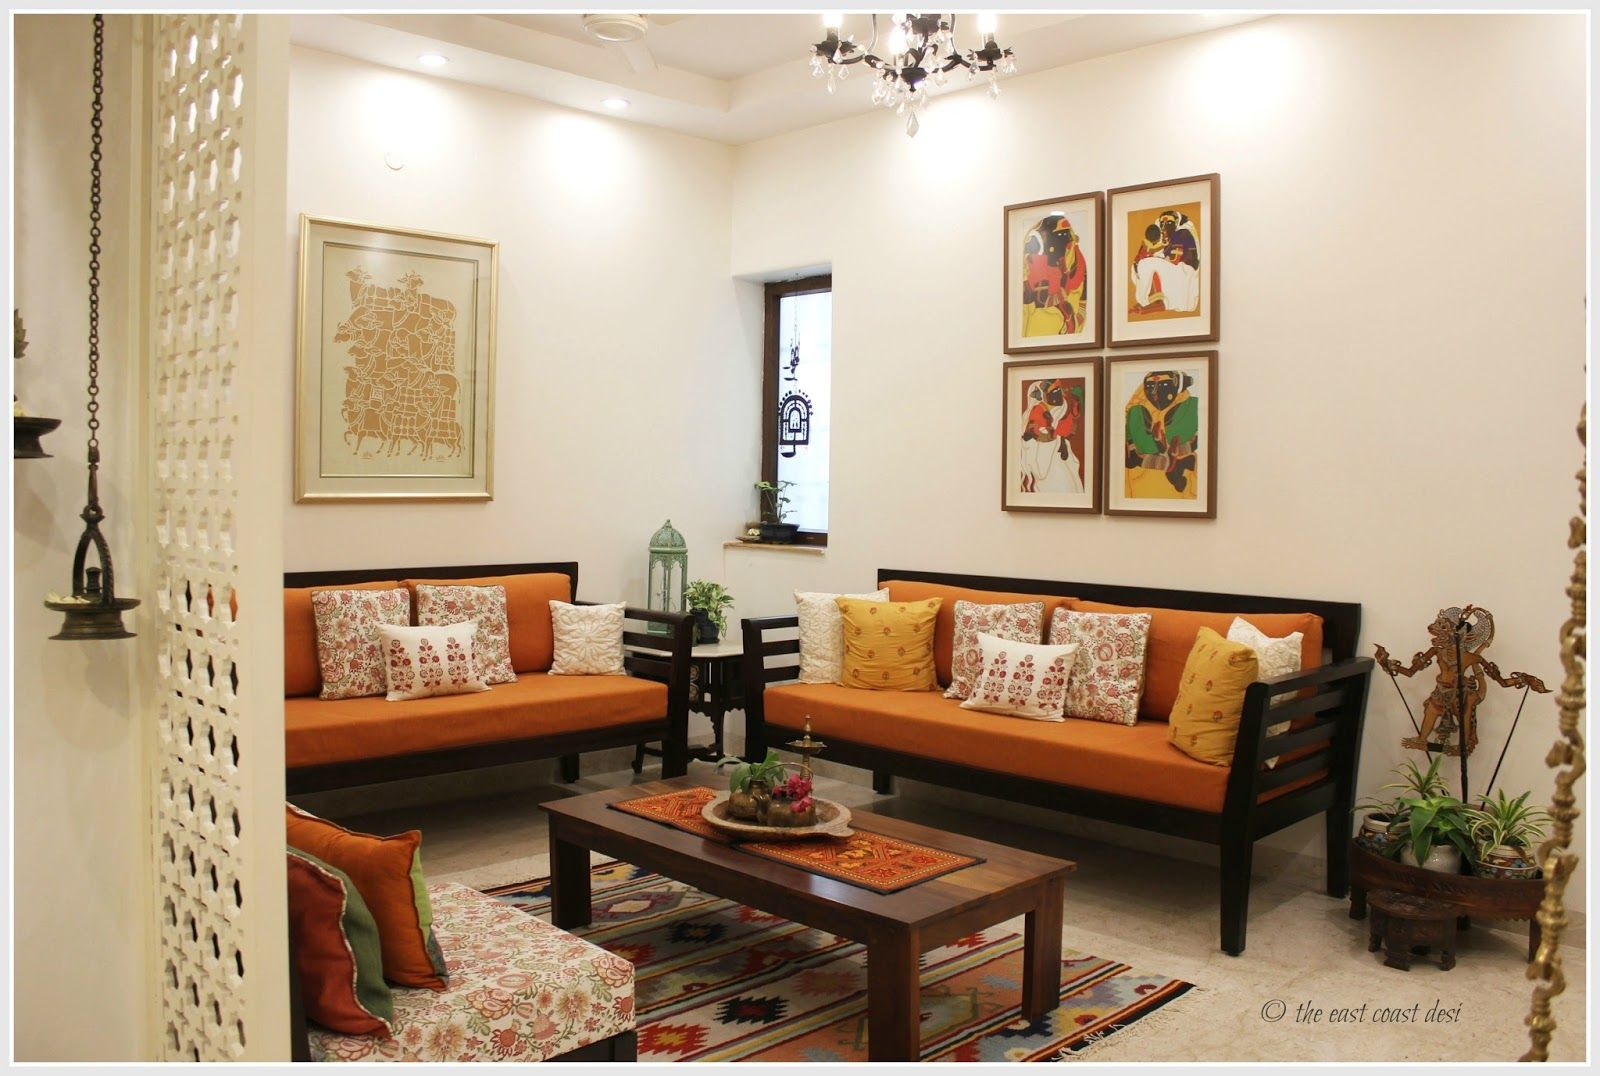 Modern indian home decor interior design style living room also with creamy white walls and an open arrangement in the floor plan rh ar pinterest